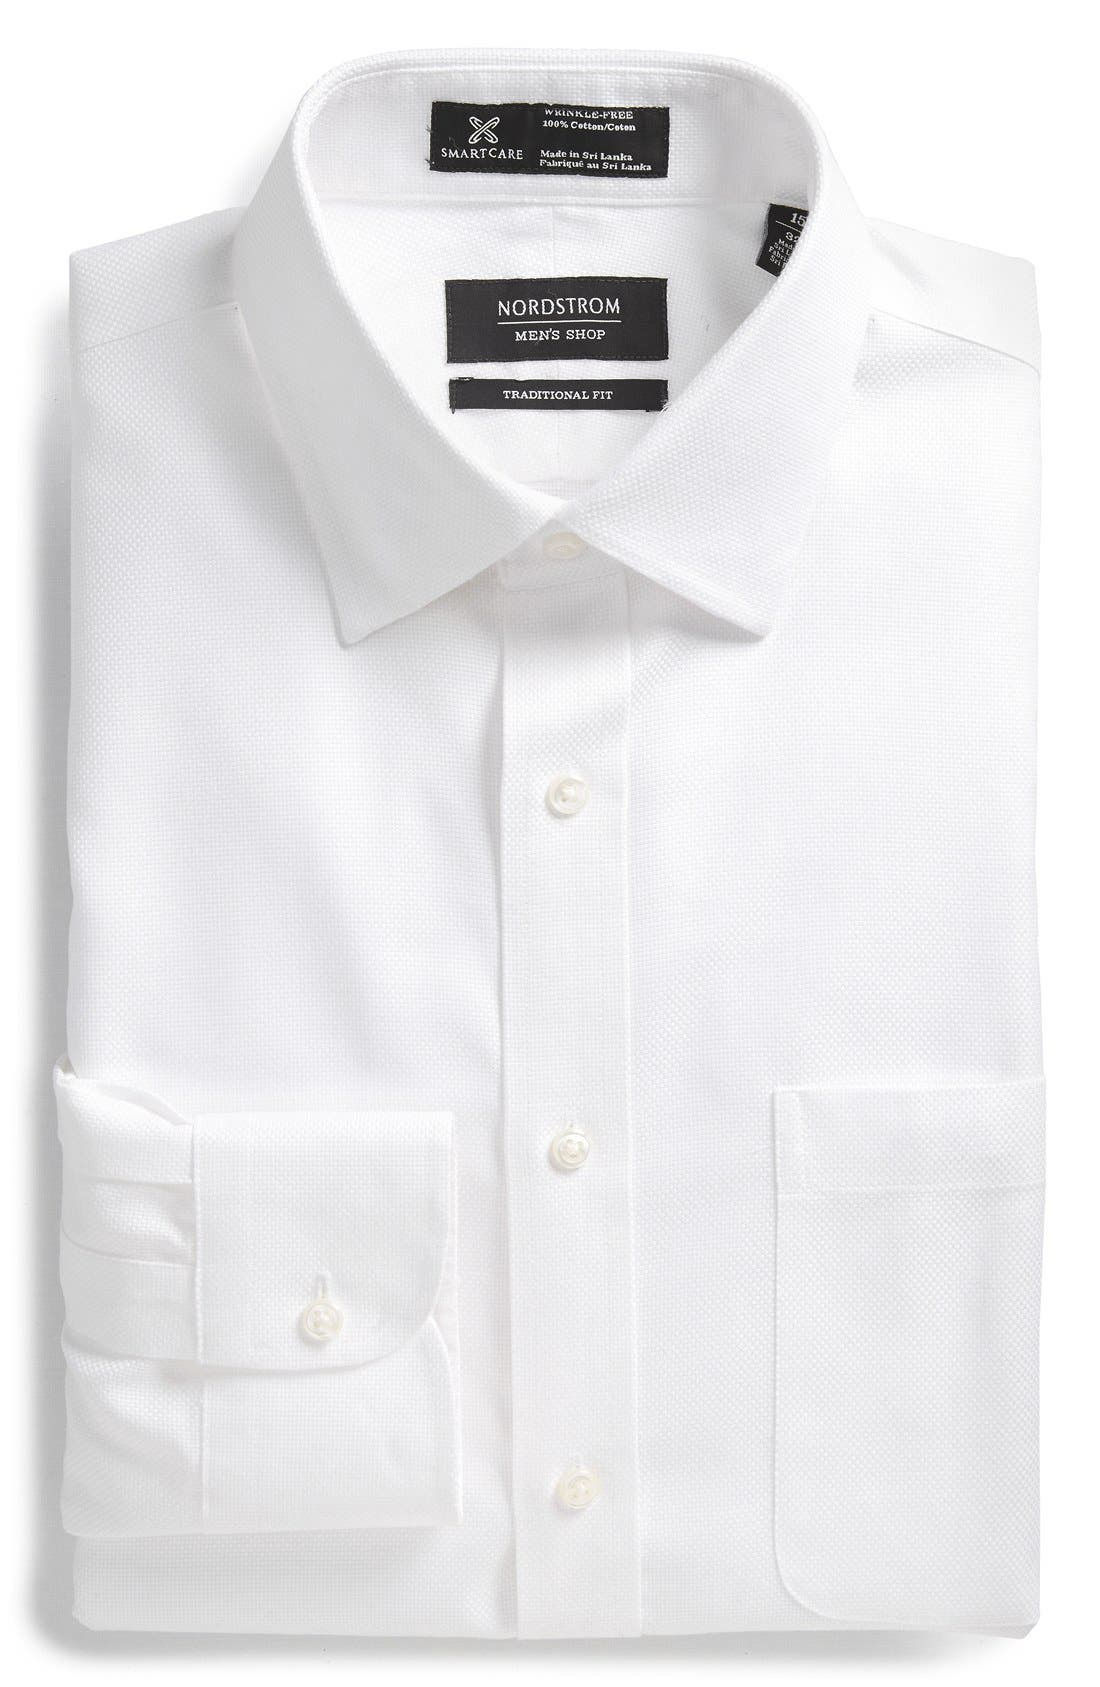 Smartcare<sup>™</sup> Traditional Fit Solid Dress Shirt,                         Main,                         color, White